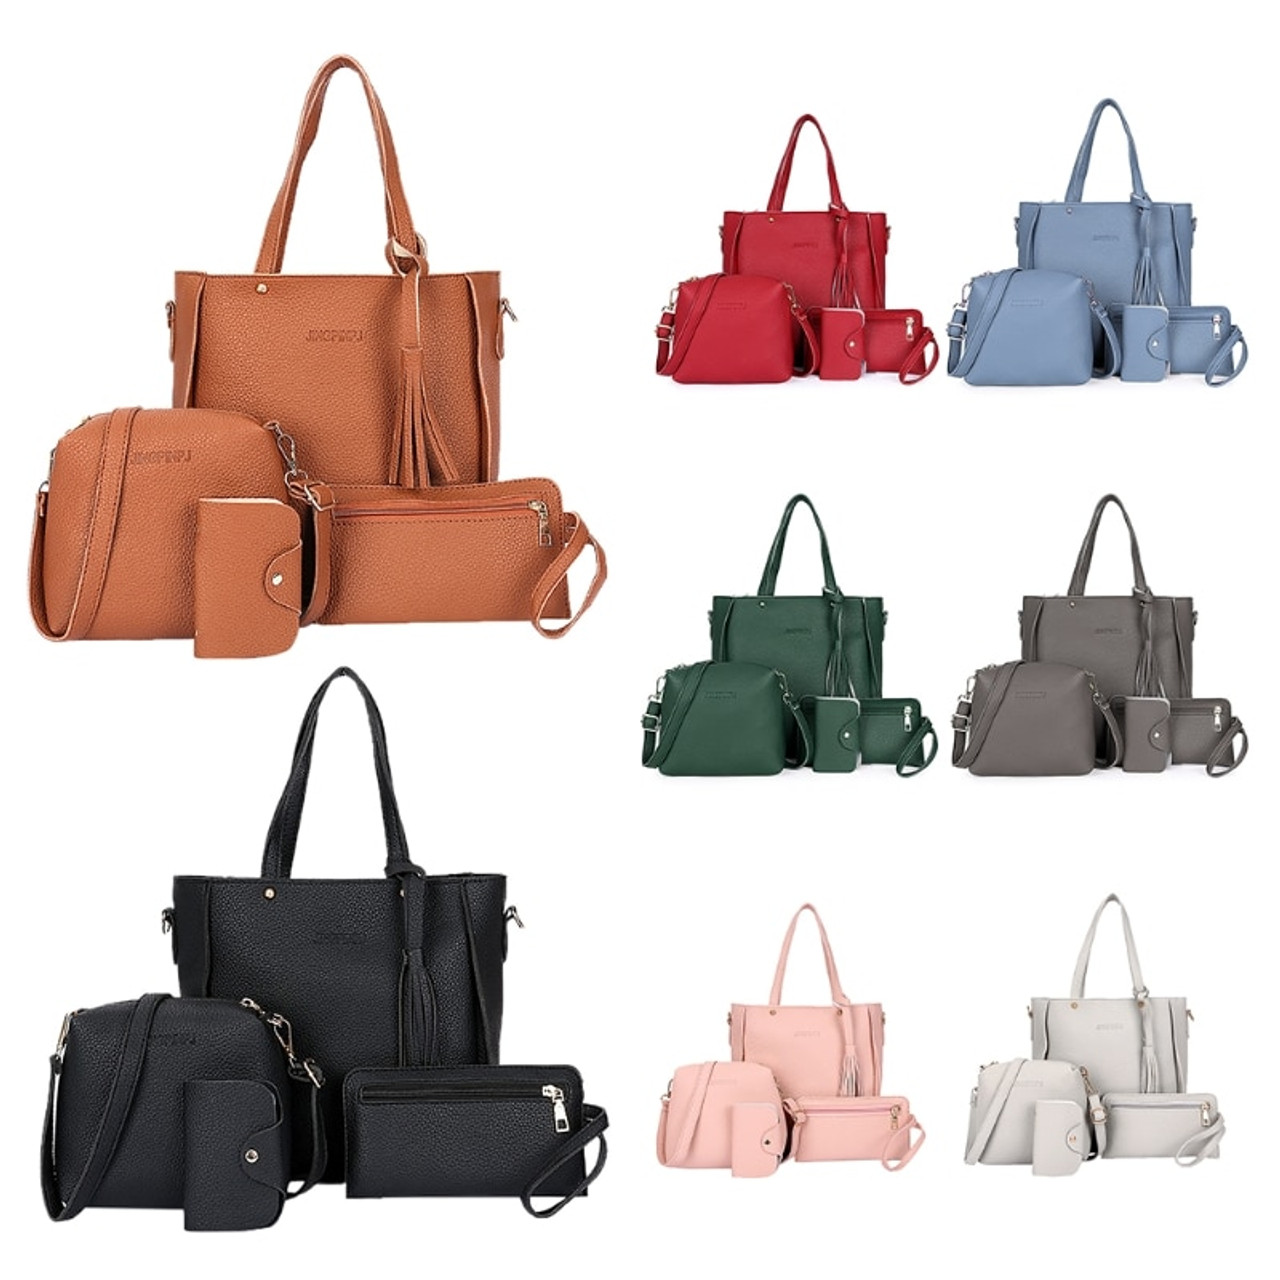 d9a531c0befa 4pcs Women Lady Fashion Handbag Shoulder Bags Tote Purse Messenger Satchel  Set - OnshopDeals.Com